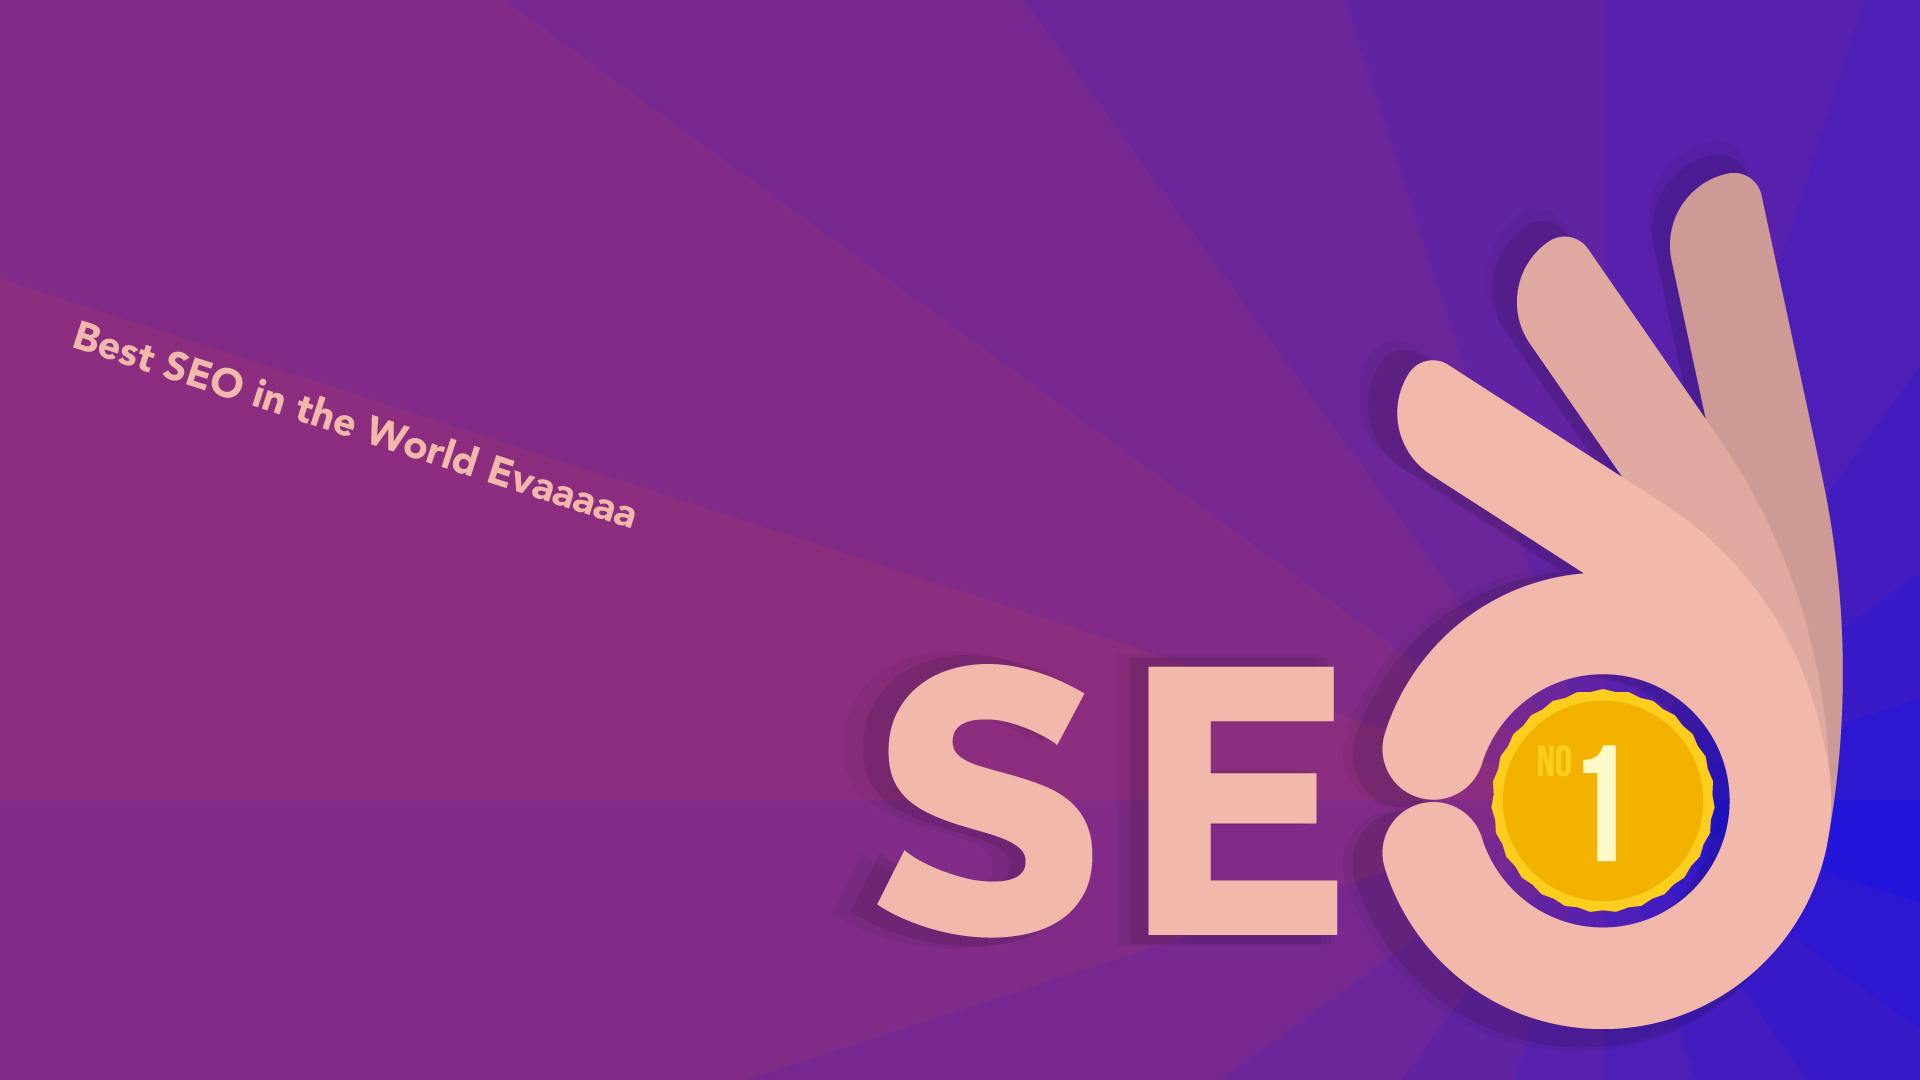 Wolfgang Wins Best SEO Agency at the 2019 Search Engine Land Awards